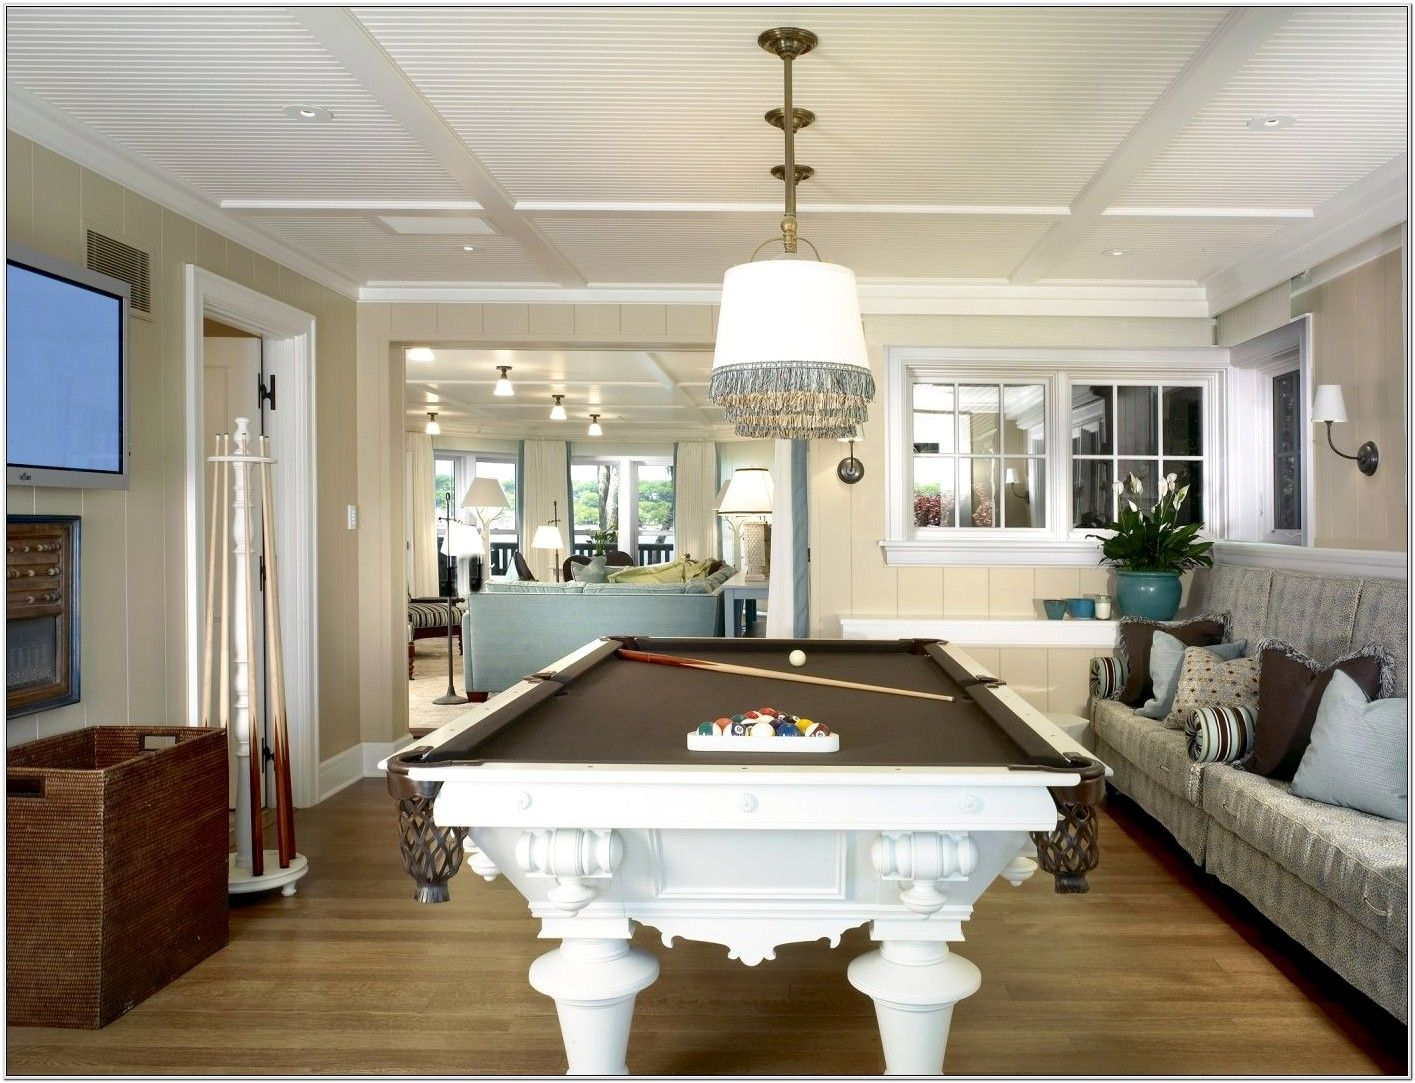 Pool Table In Formal Living Room Ideas White Pool Table Pool Table Room Formal Living Rooms